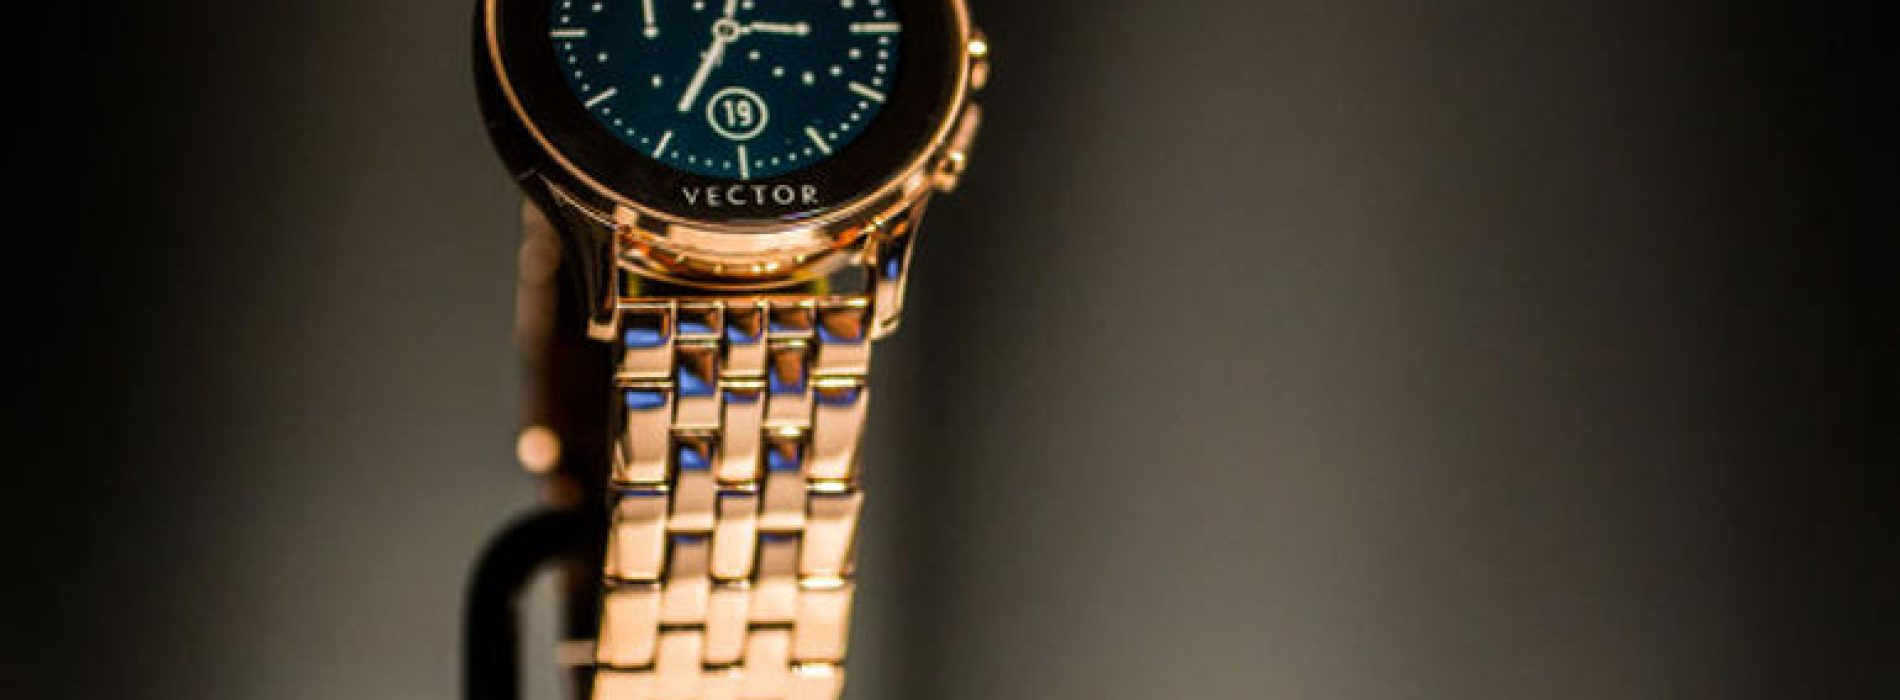 Vector smartwatch comes with a 30-day battery life